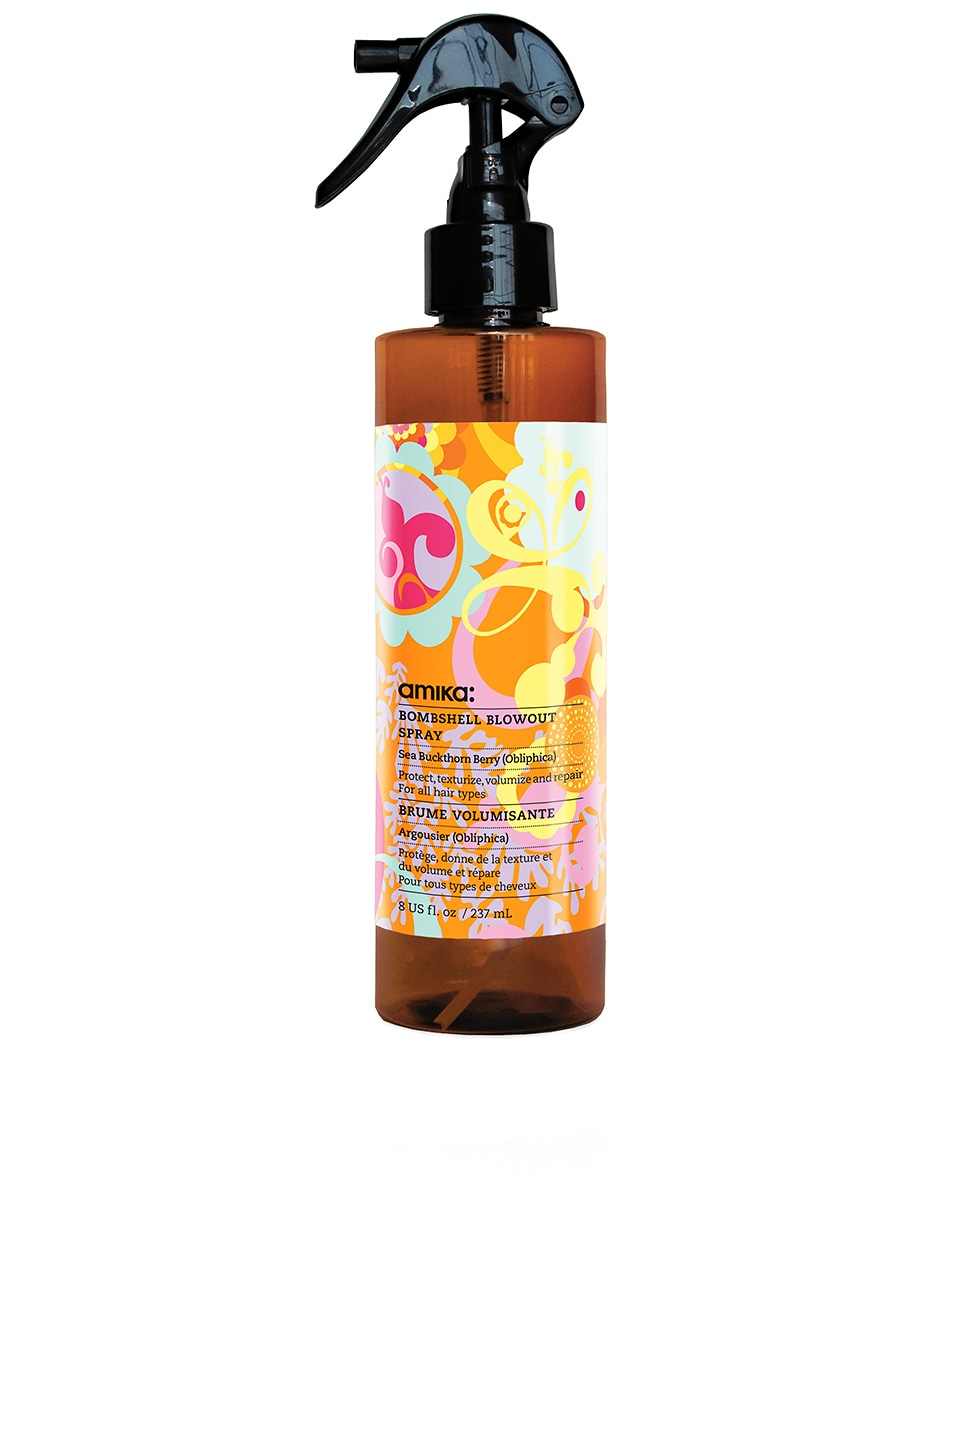 Amika Bombshell Blowout Spray в цвете Нейтральный